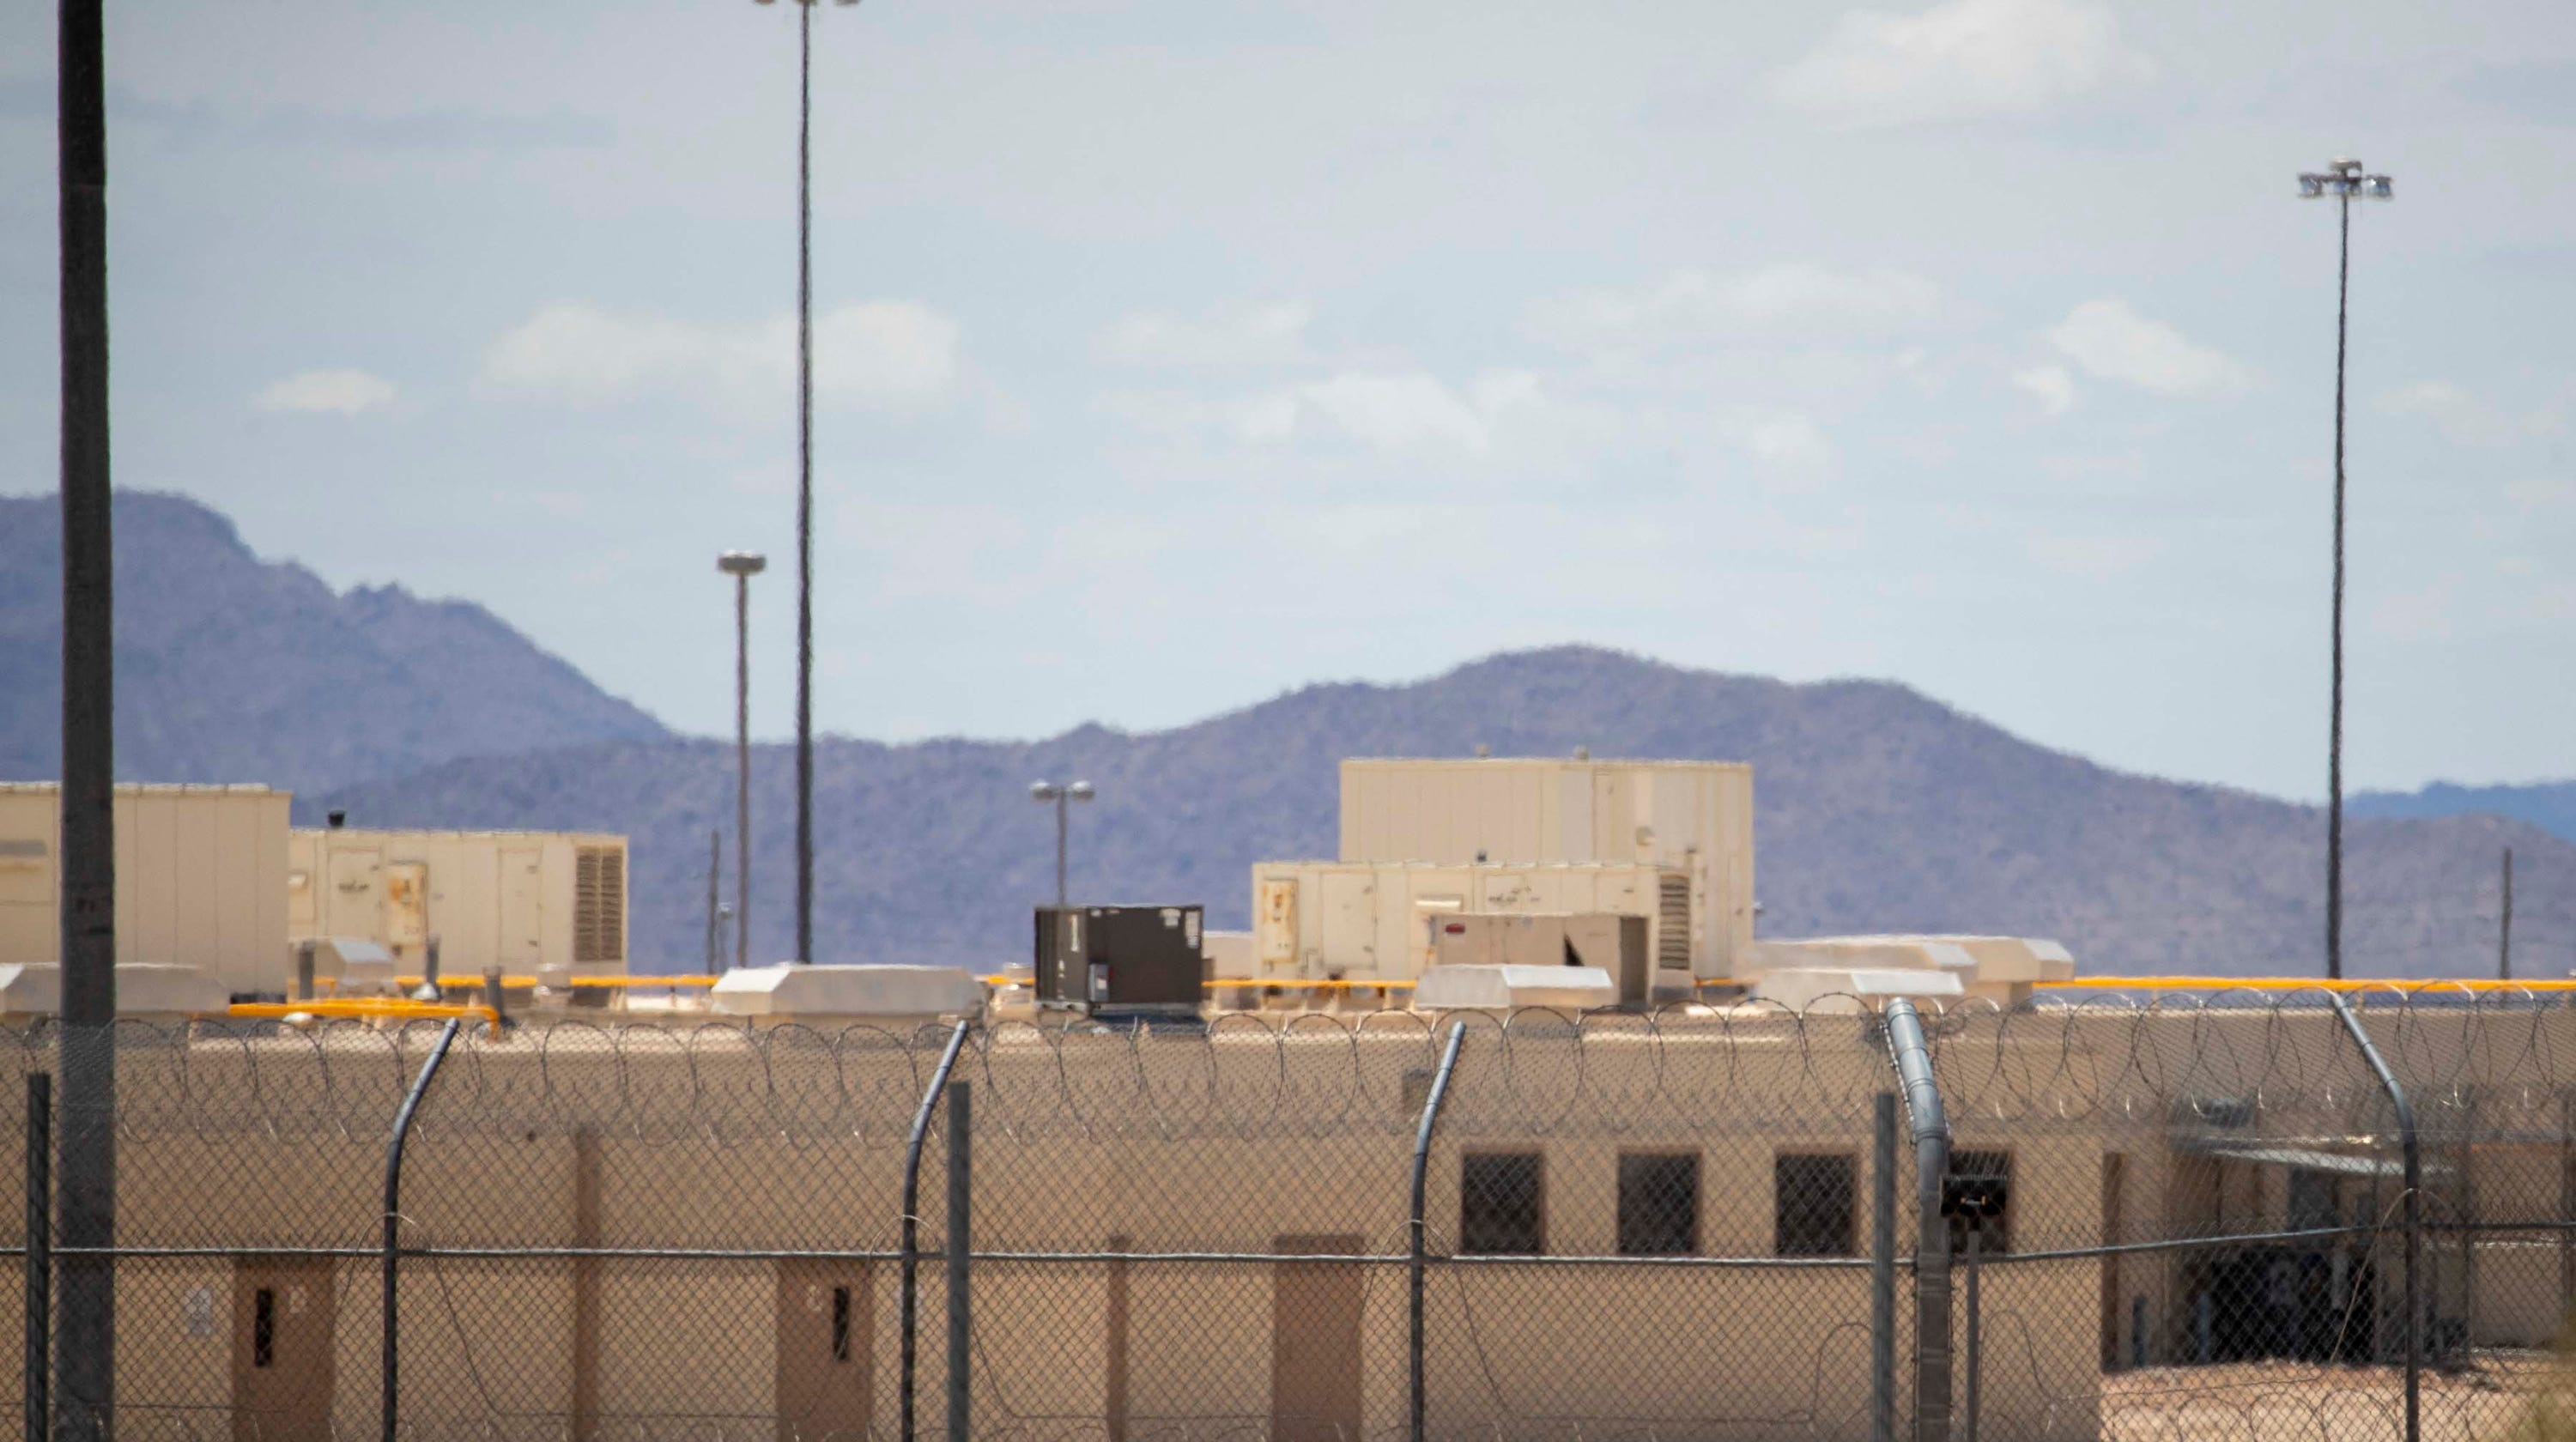 Arizona corrections officer warns of a cover-up of prison